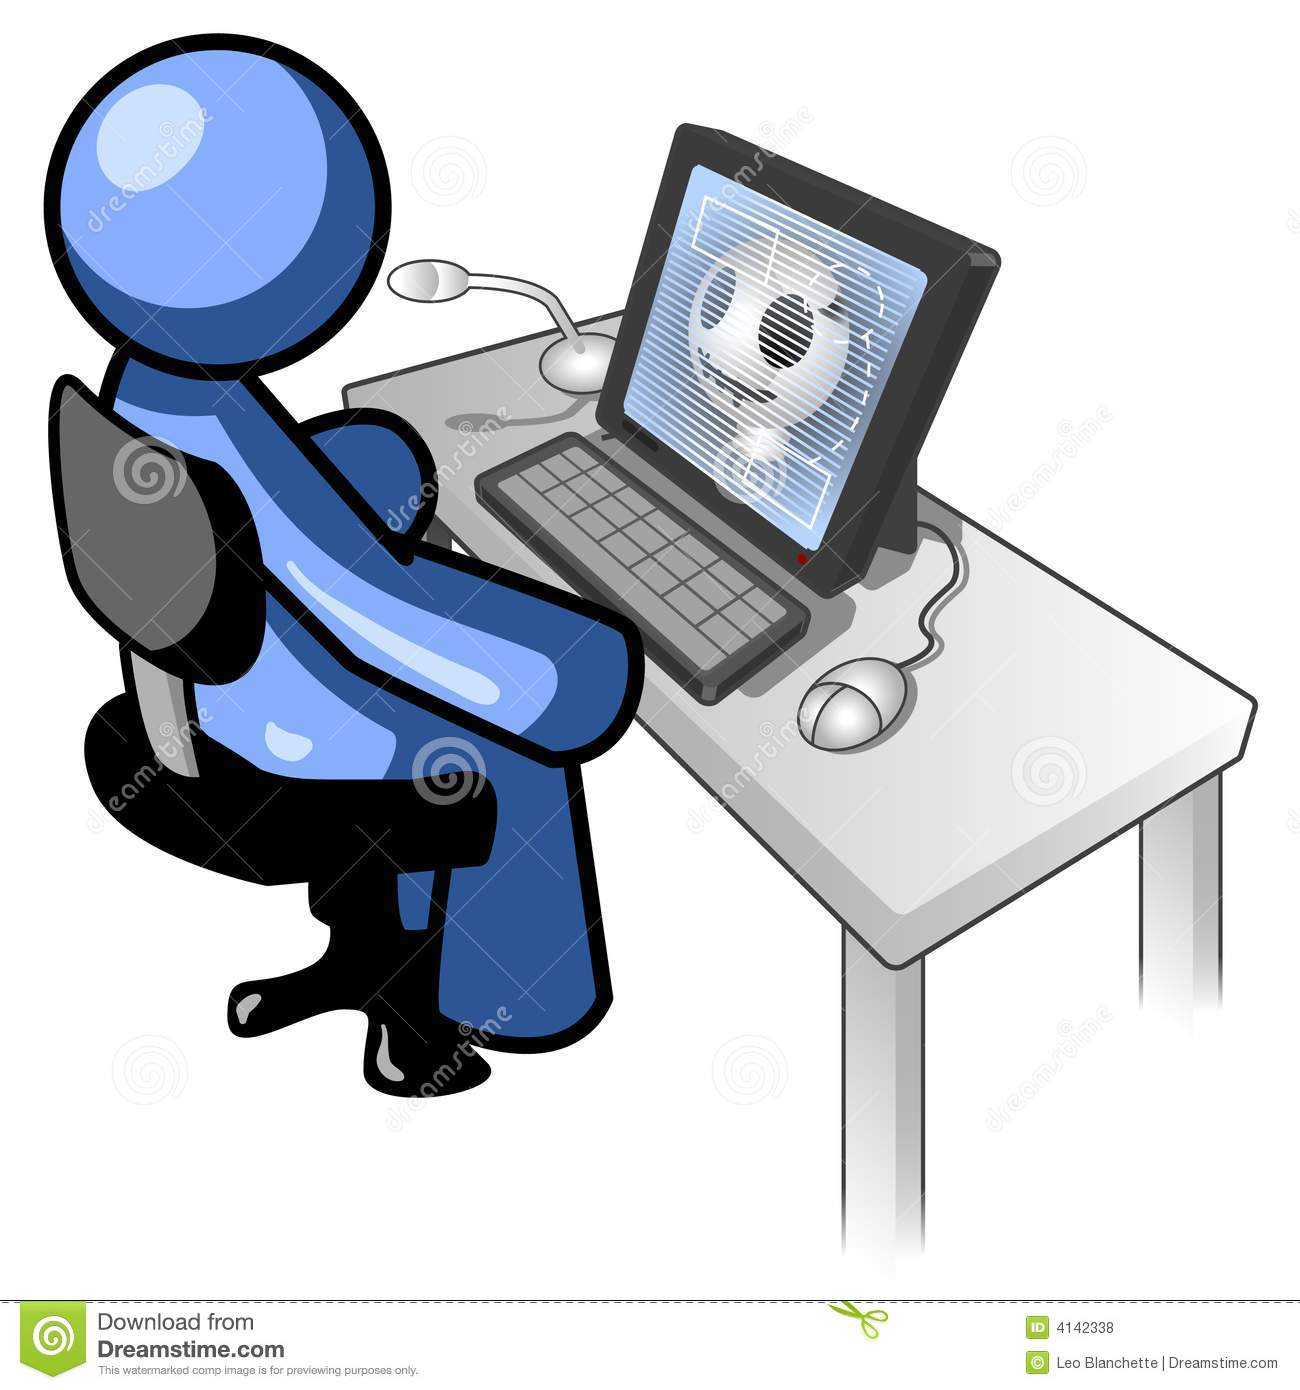 Cartoon Man Using Computer Royalty Free Stock Photos - Image: 4142338